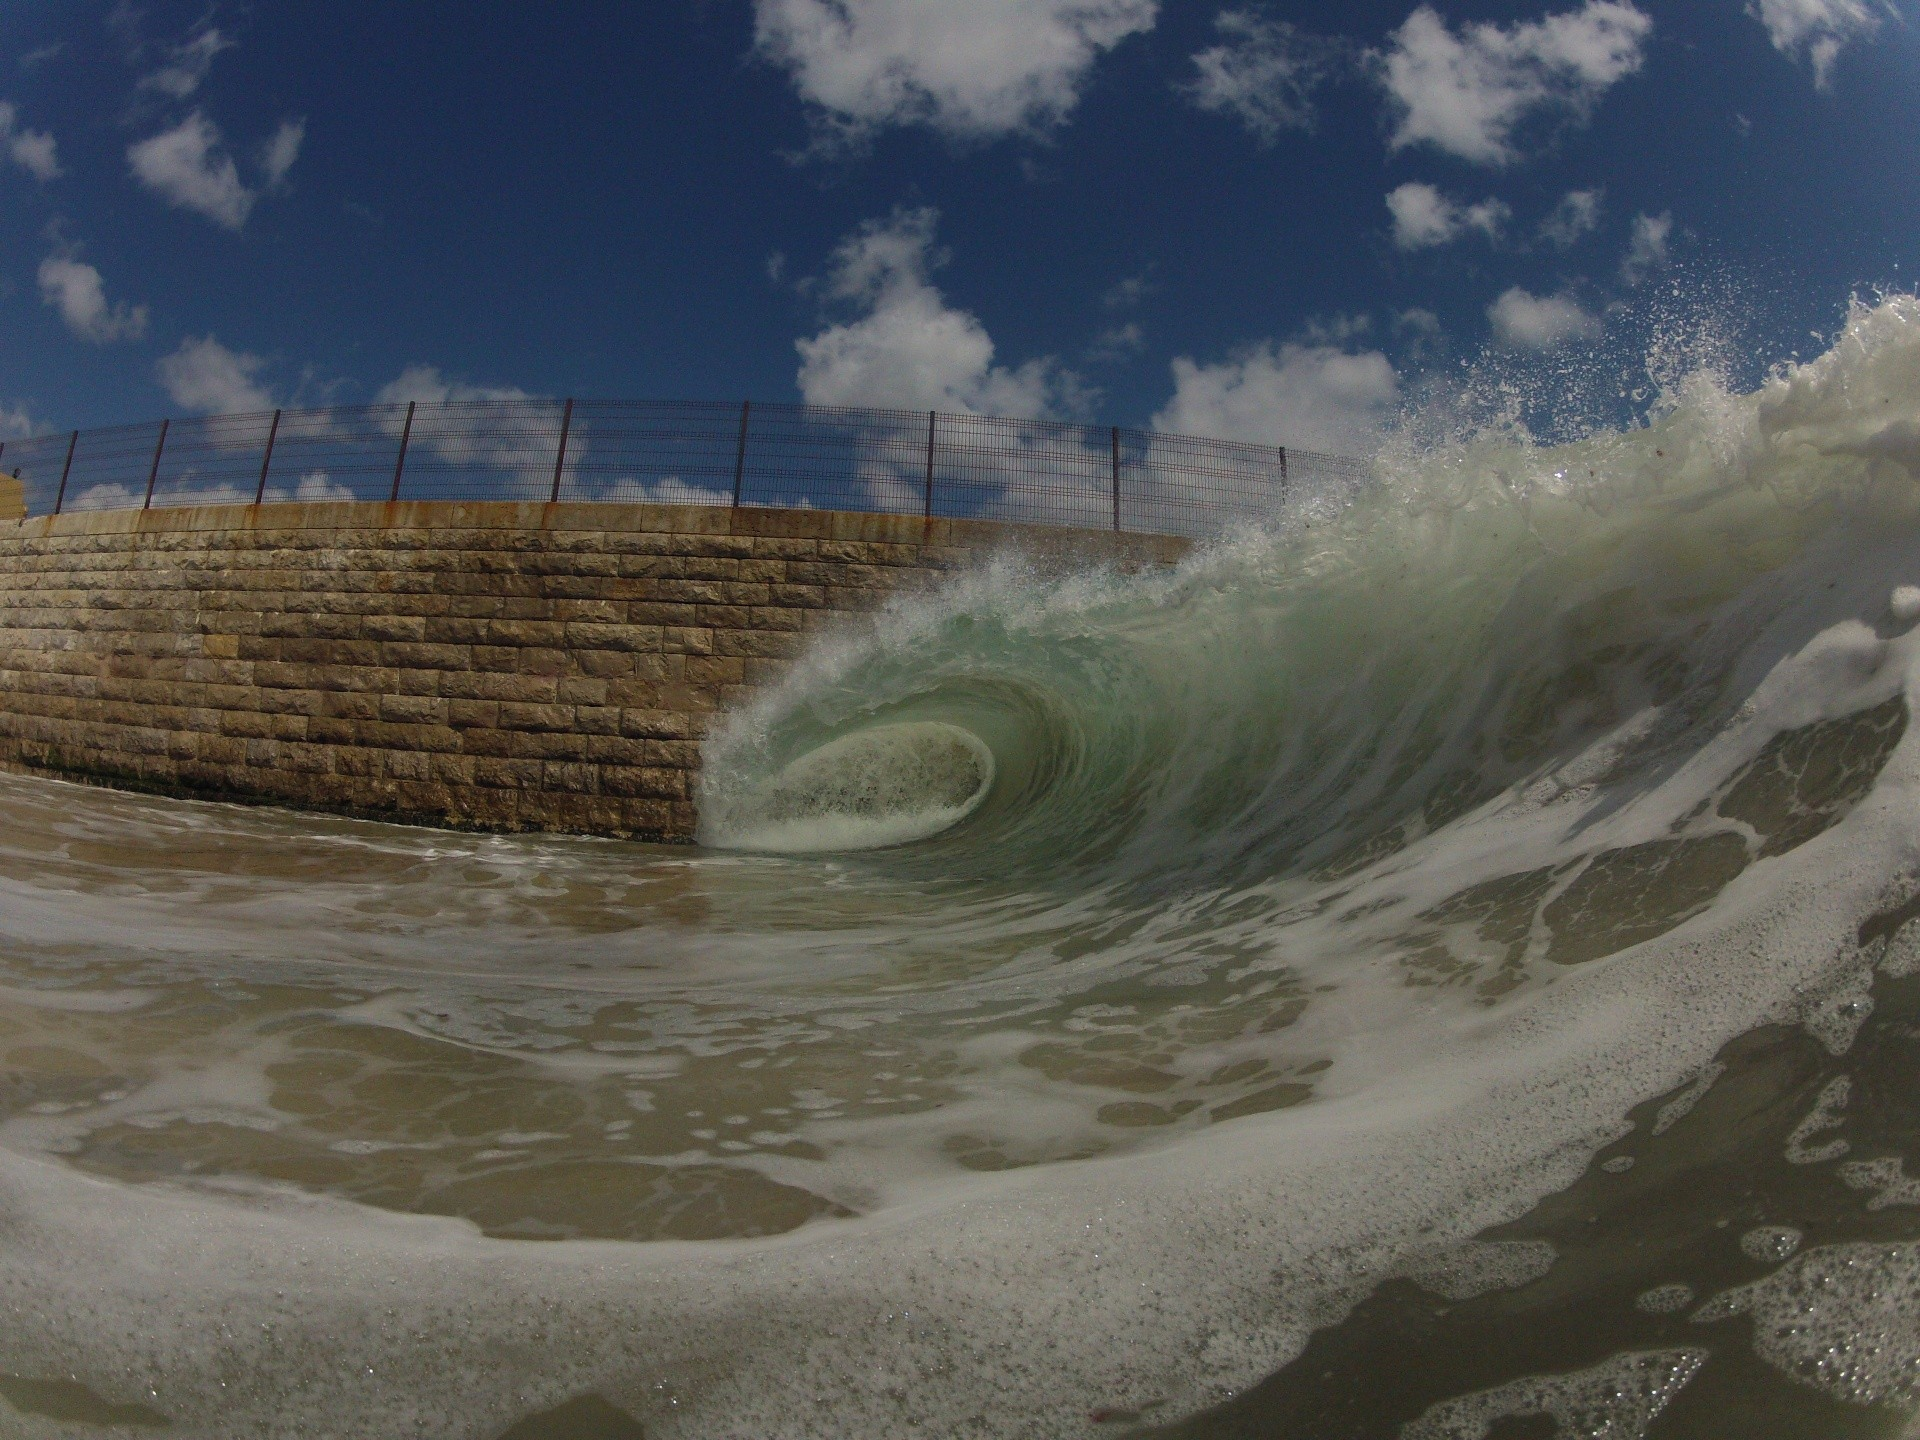 Mitch Holmes's photo of Supertubos